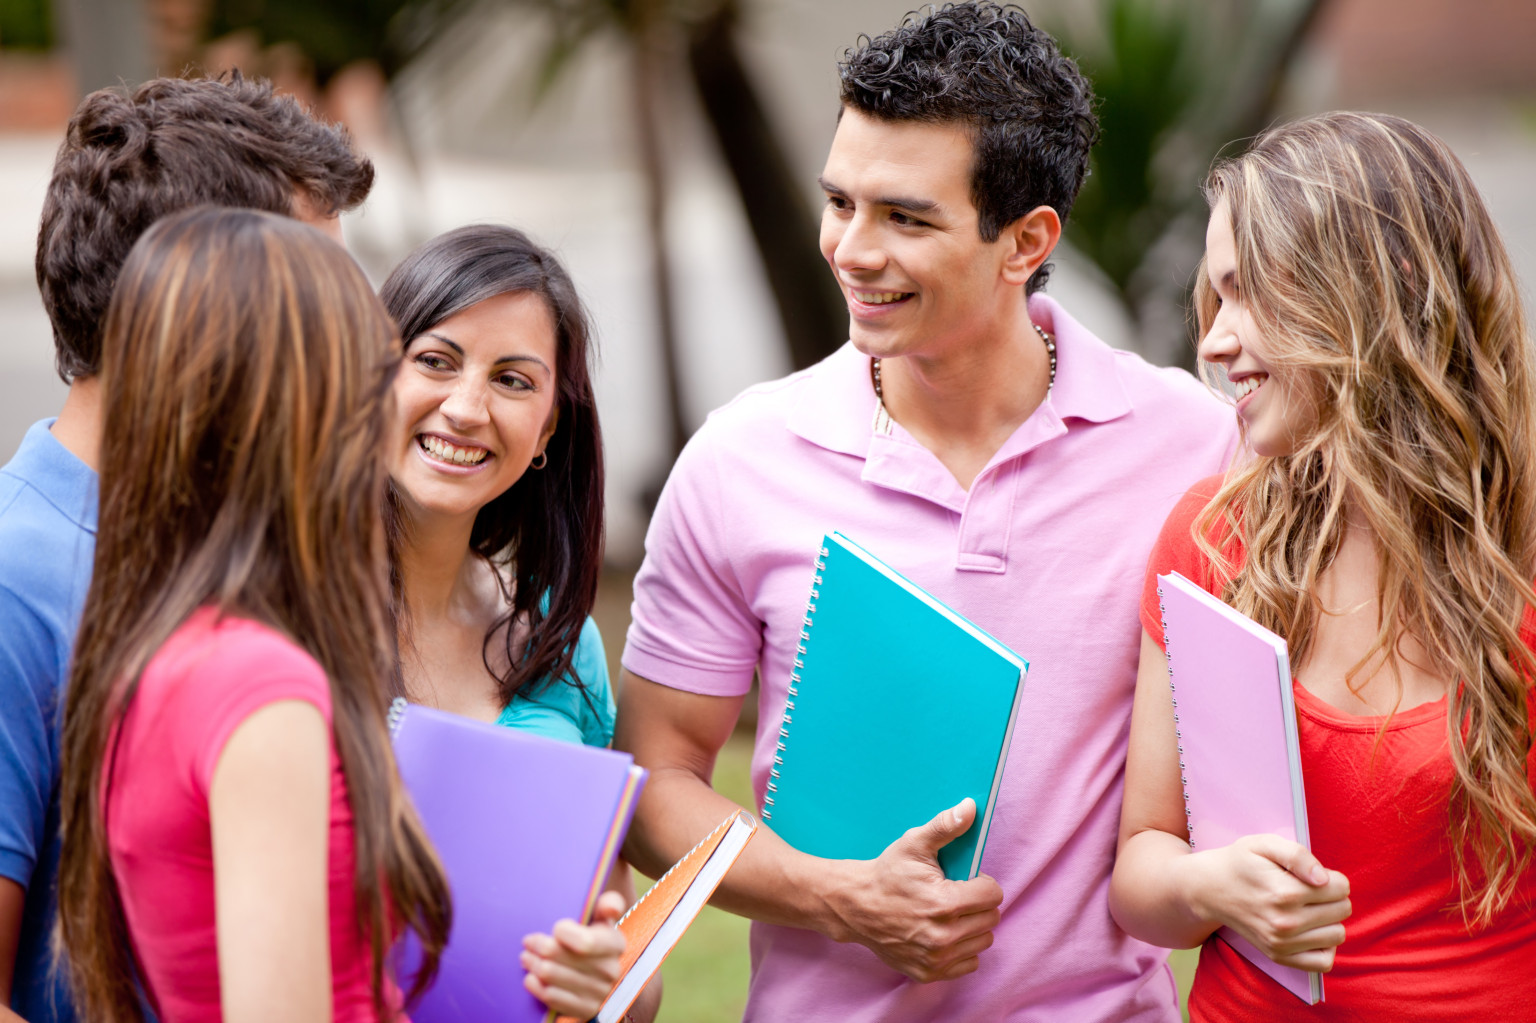 Top Places To Meet And Make Friends In College